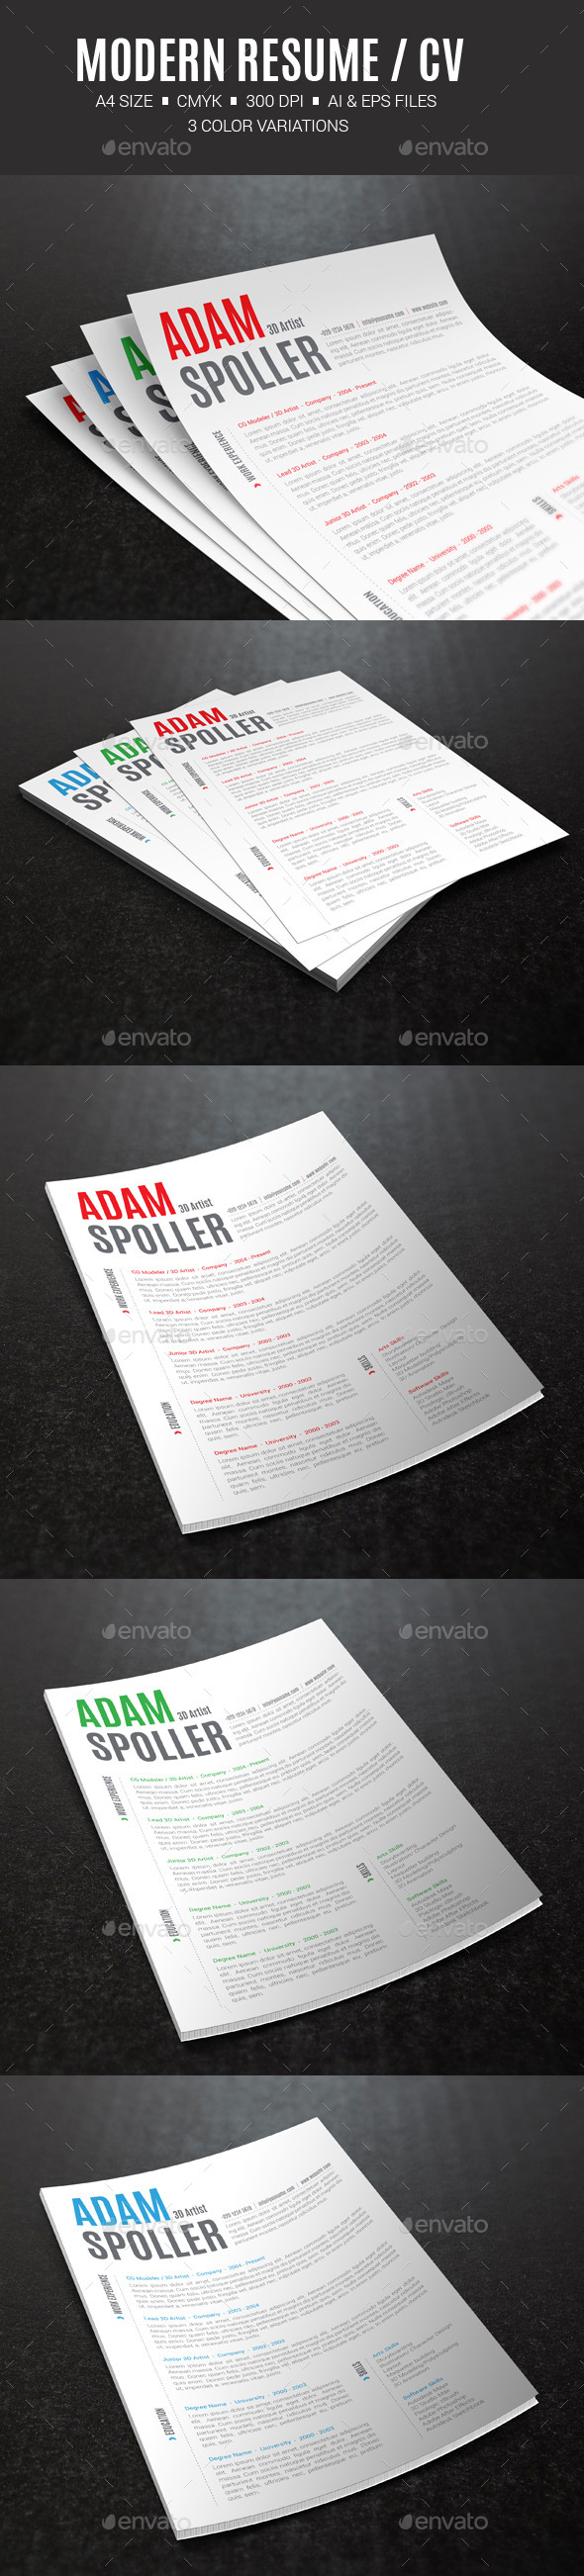 GraphicRiver Modern Resume CV 10372538